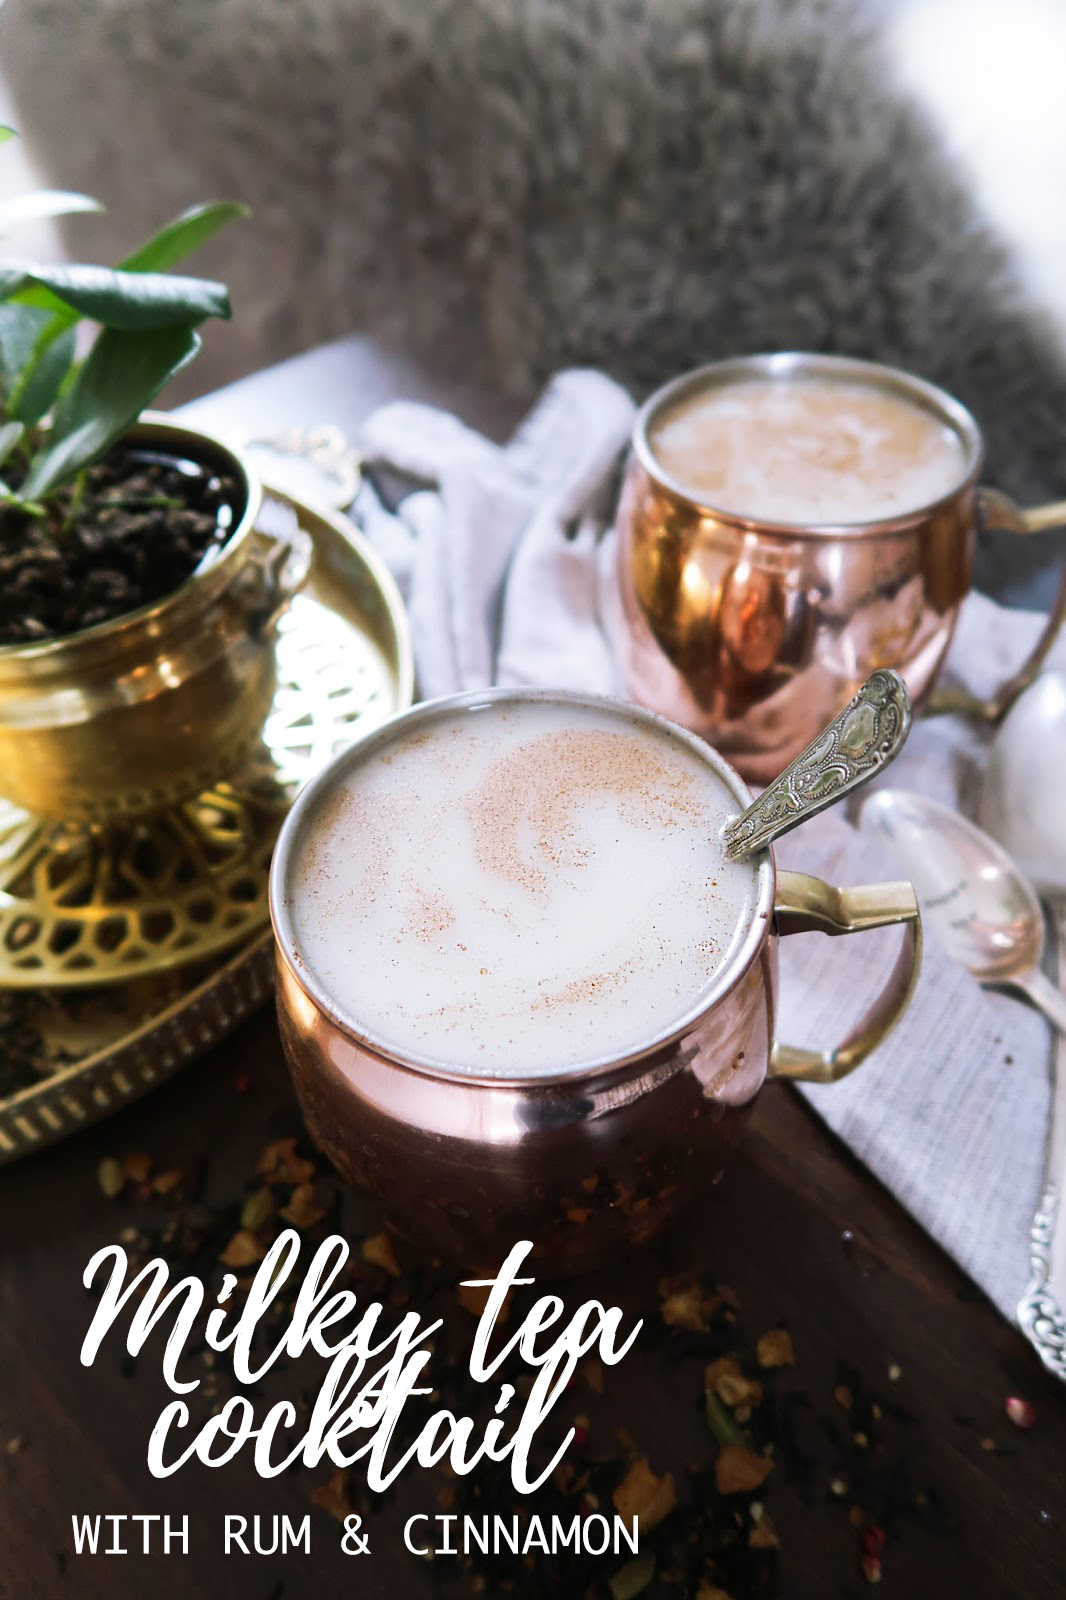 Milky tea cocktail with rum & cinnamon